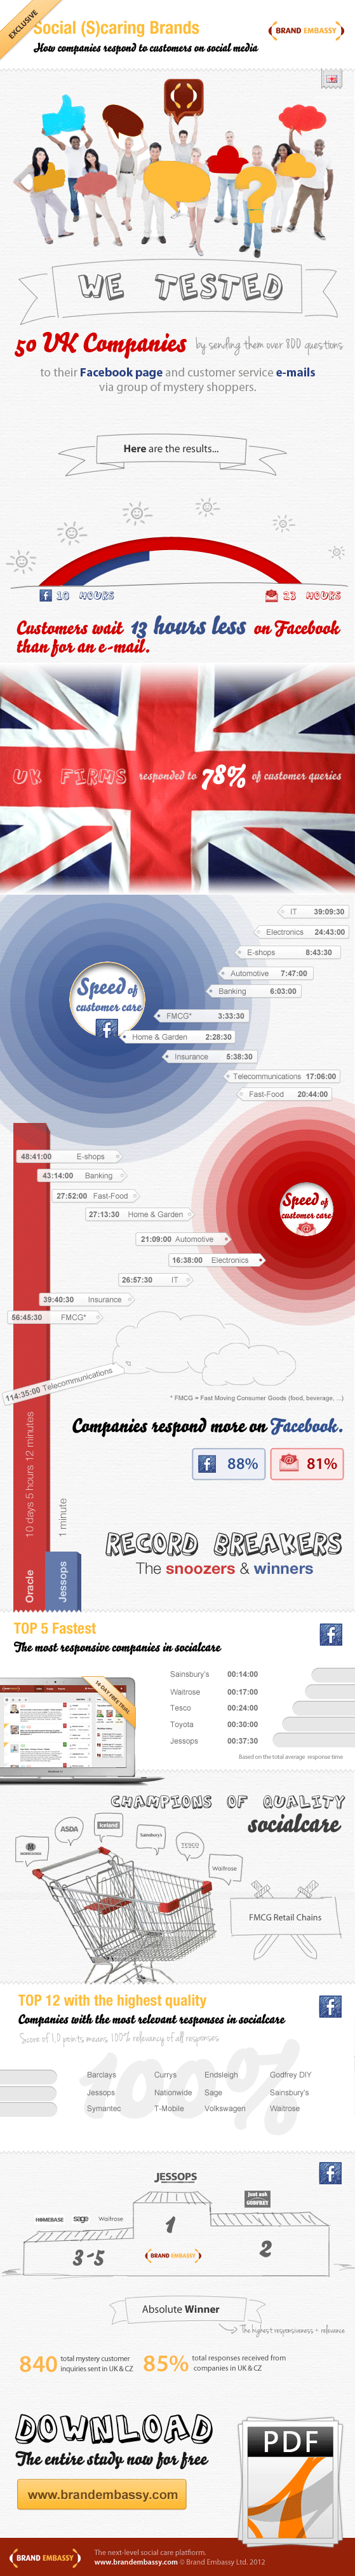 #Social (S)Caring #Brands - How Companies Respond to #Customers on #SocialMedia?